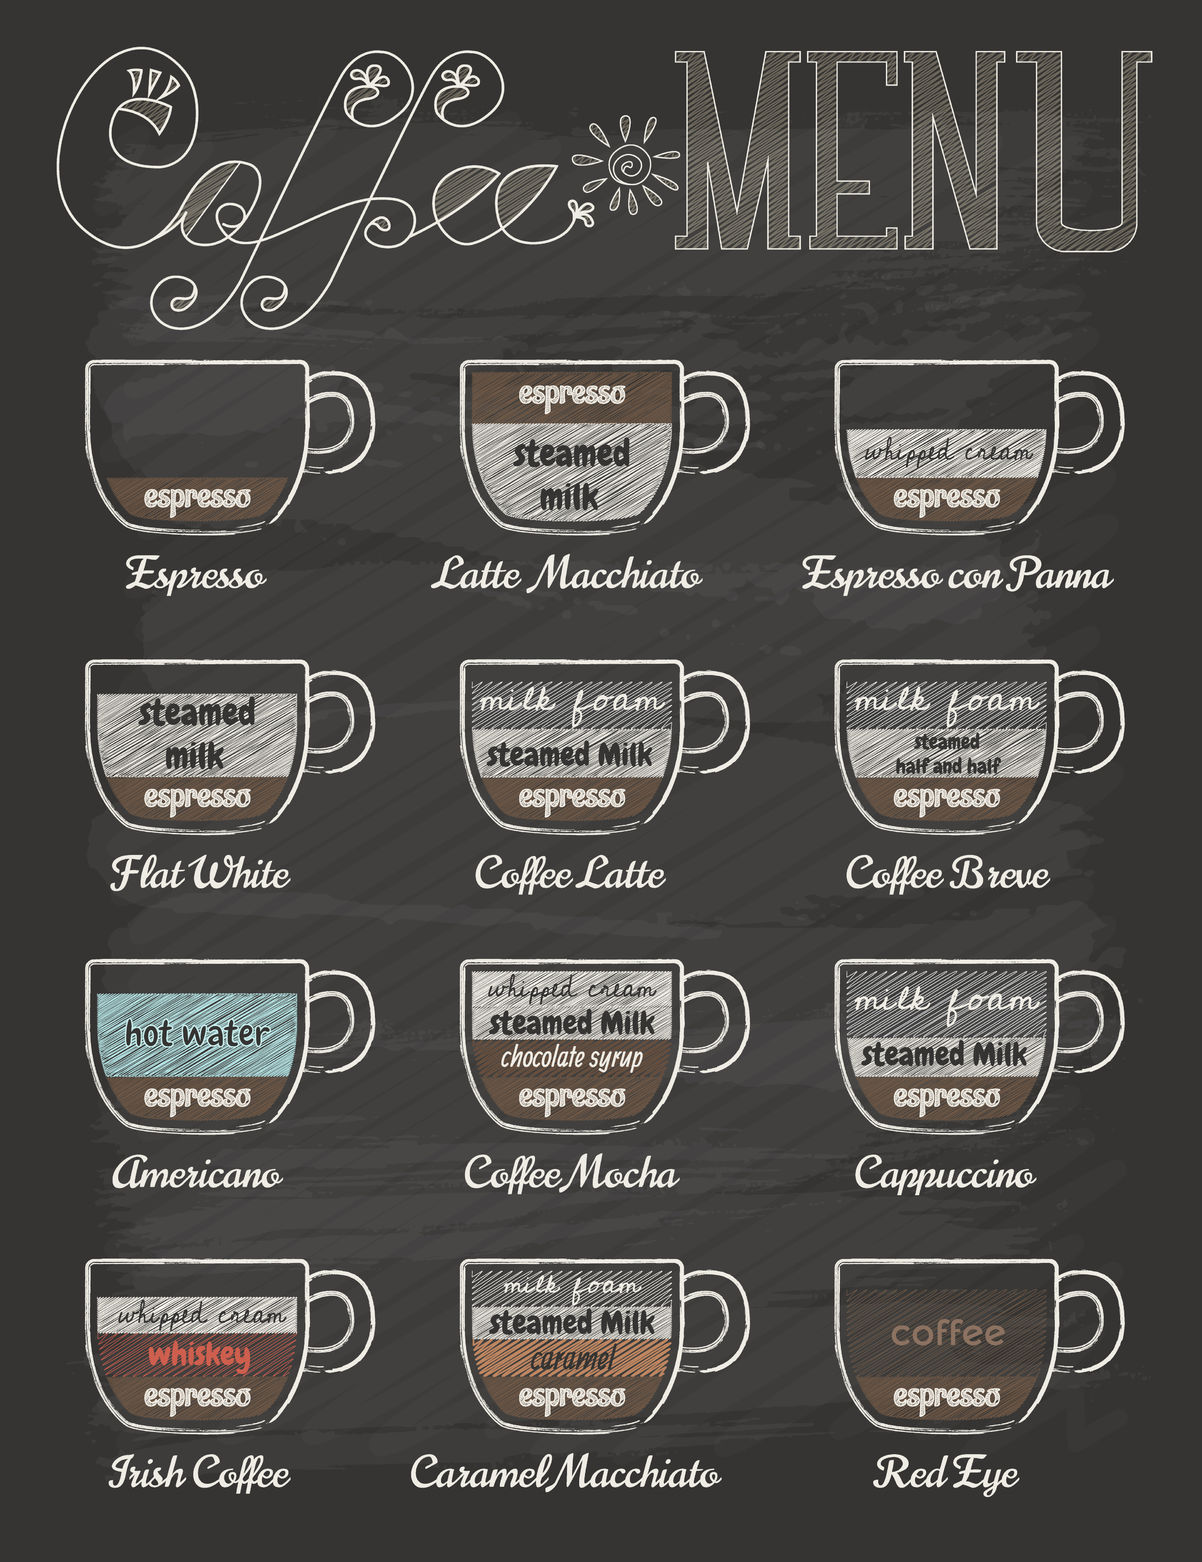 Brew Cafe Menu